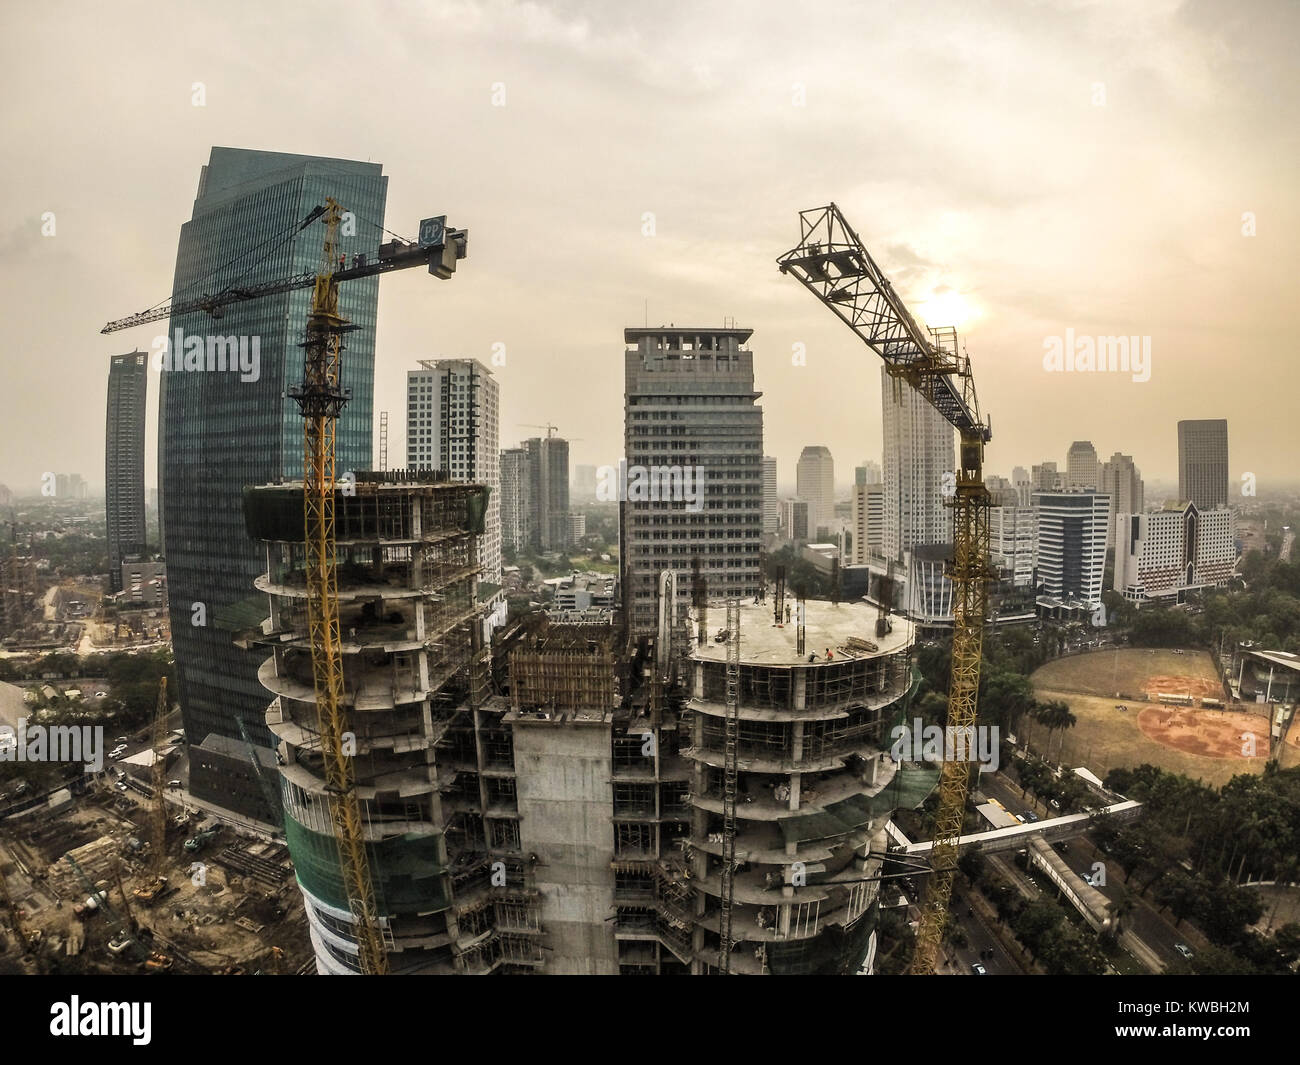 Construction of skyscraper building in the city of Jakarta - Stock Image